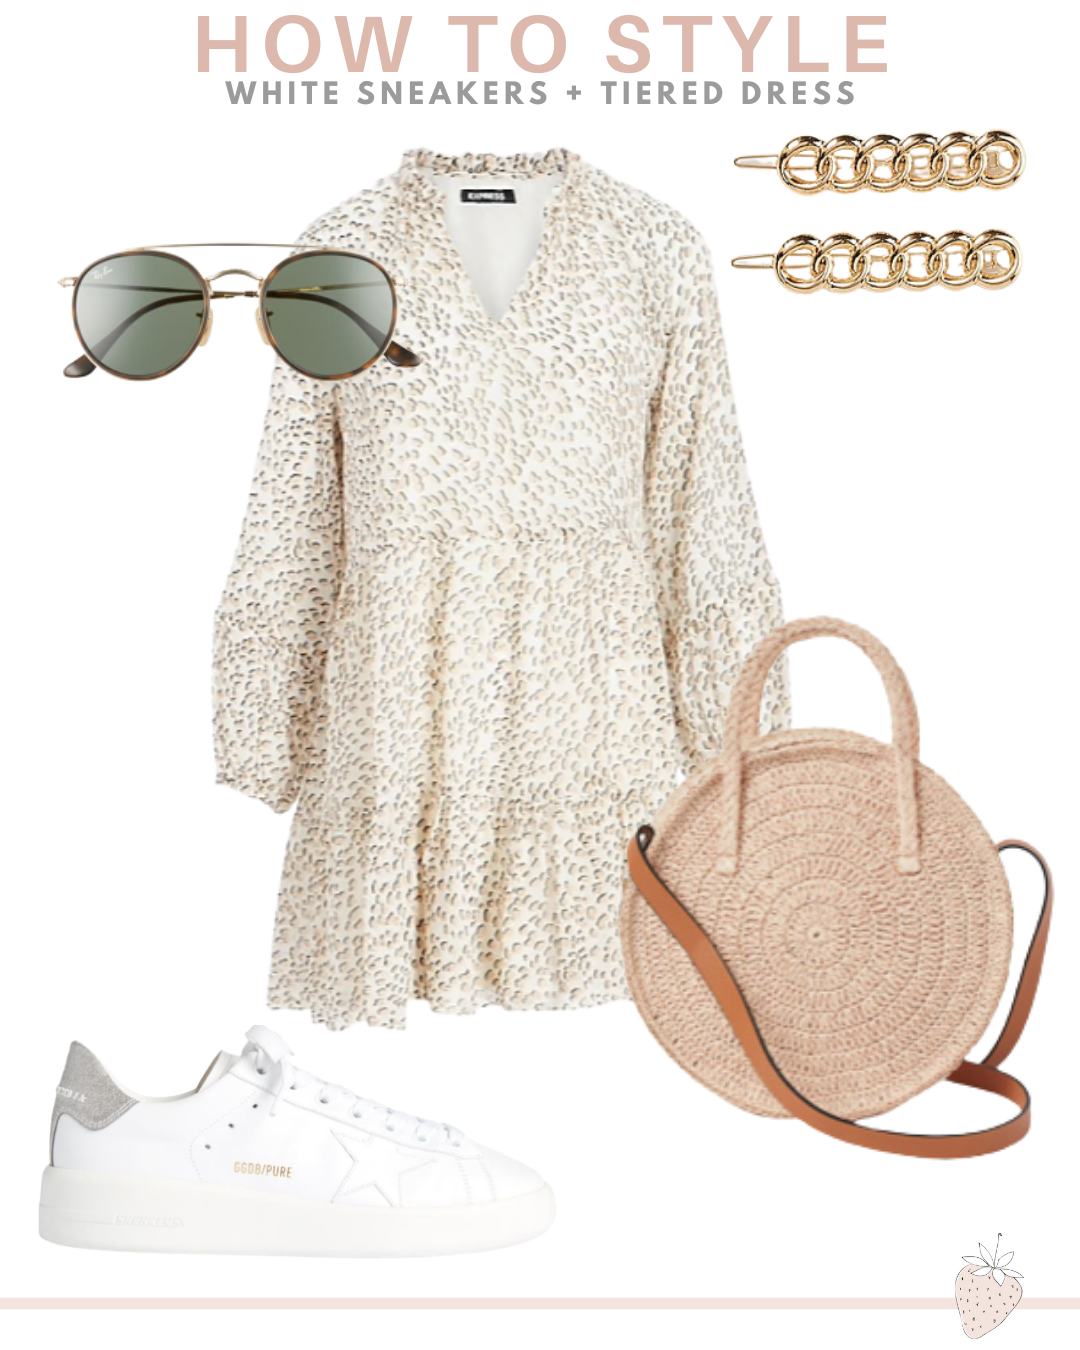 tiered dress and white sneakers